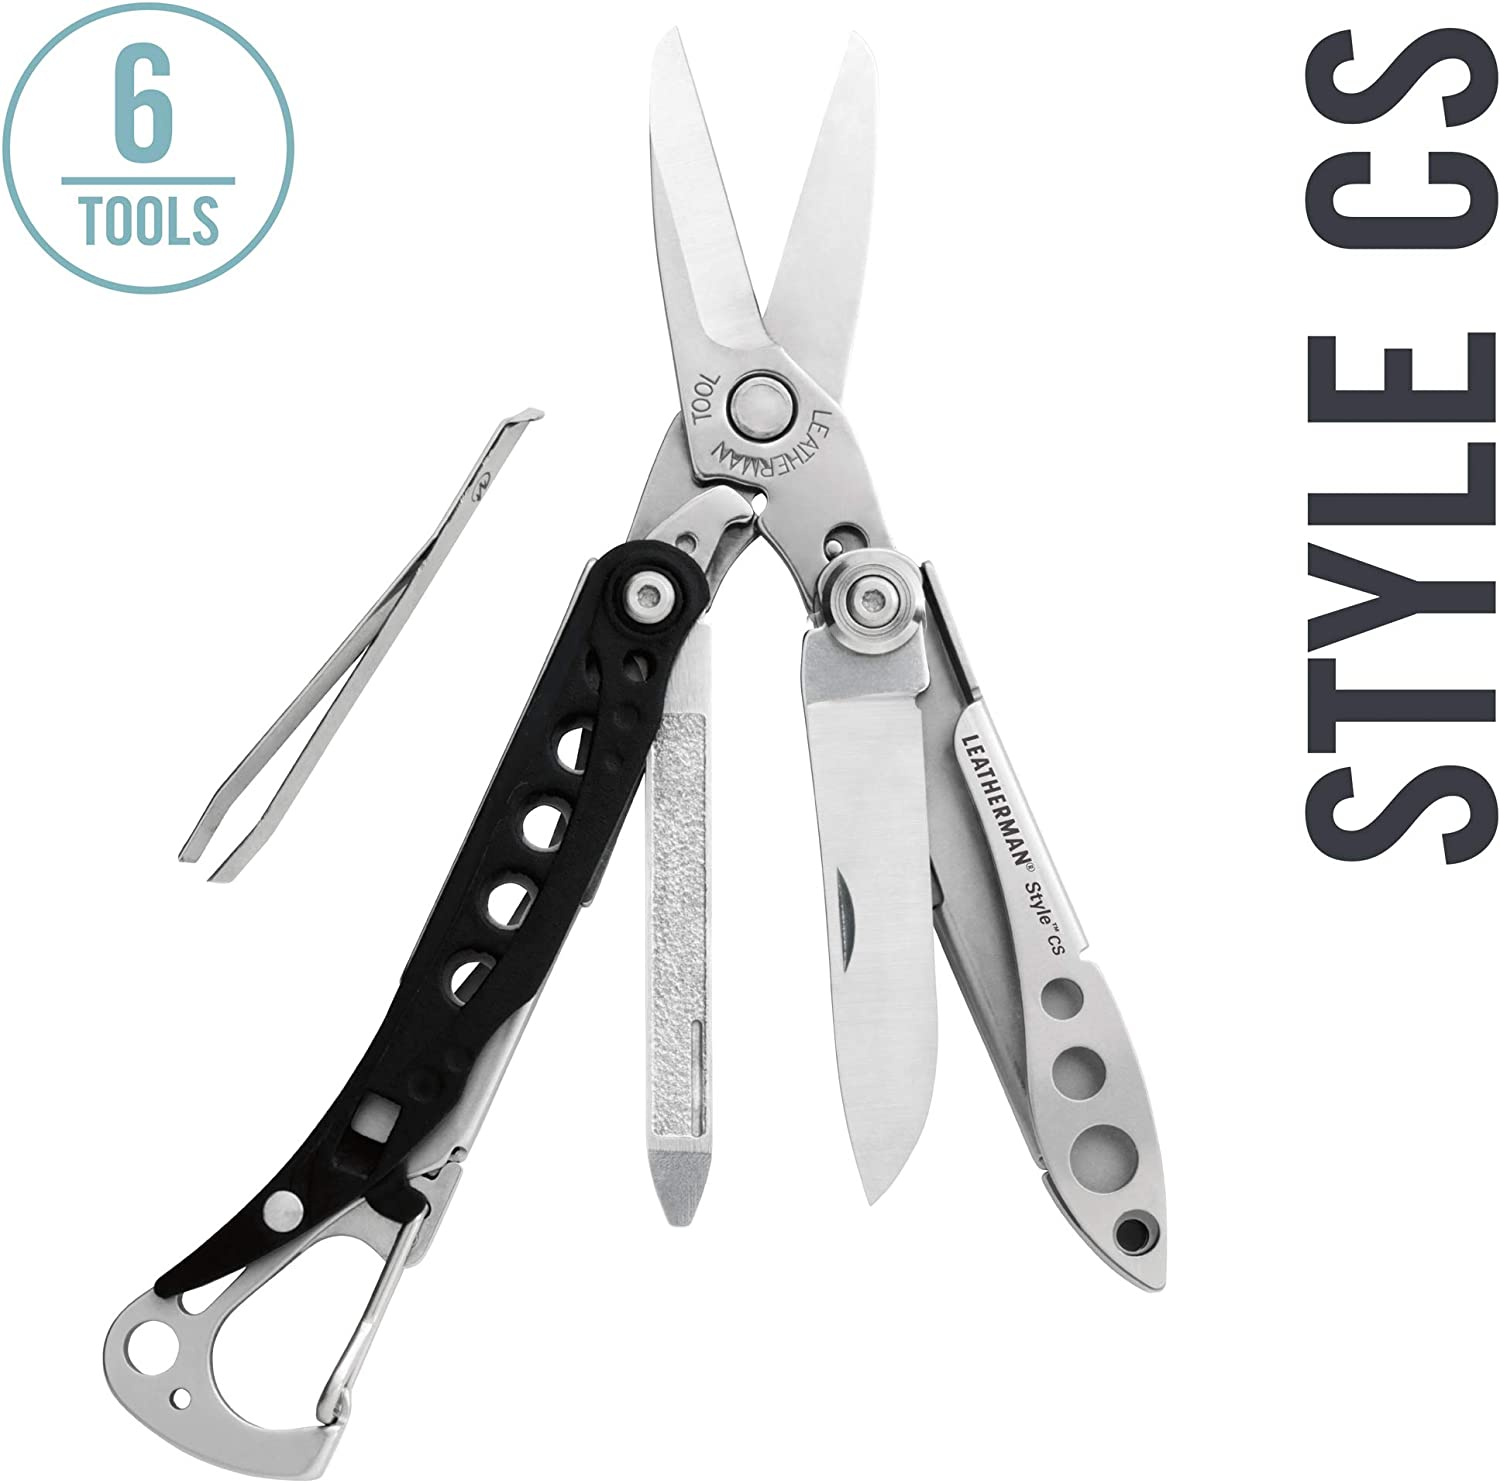 3. Leatherman Style CS Multi-Tool